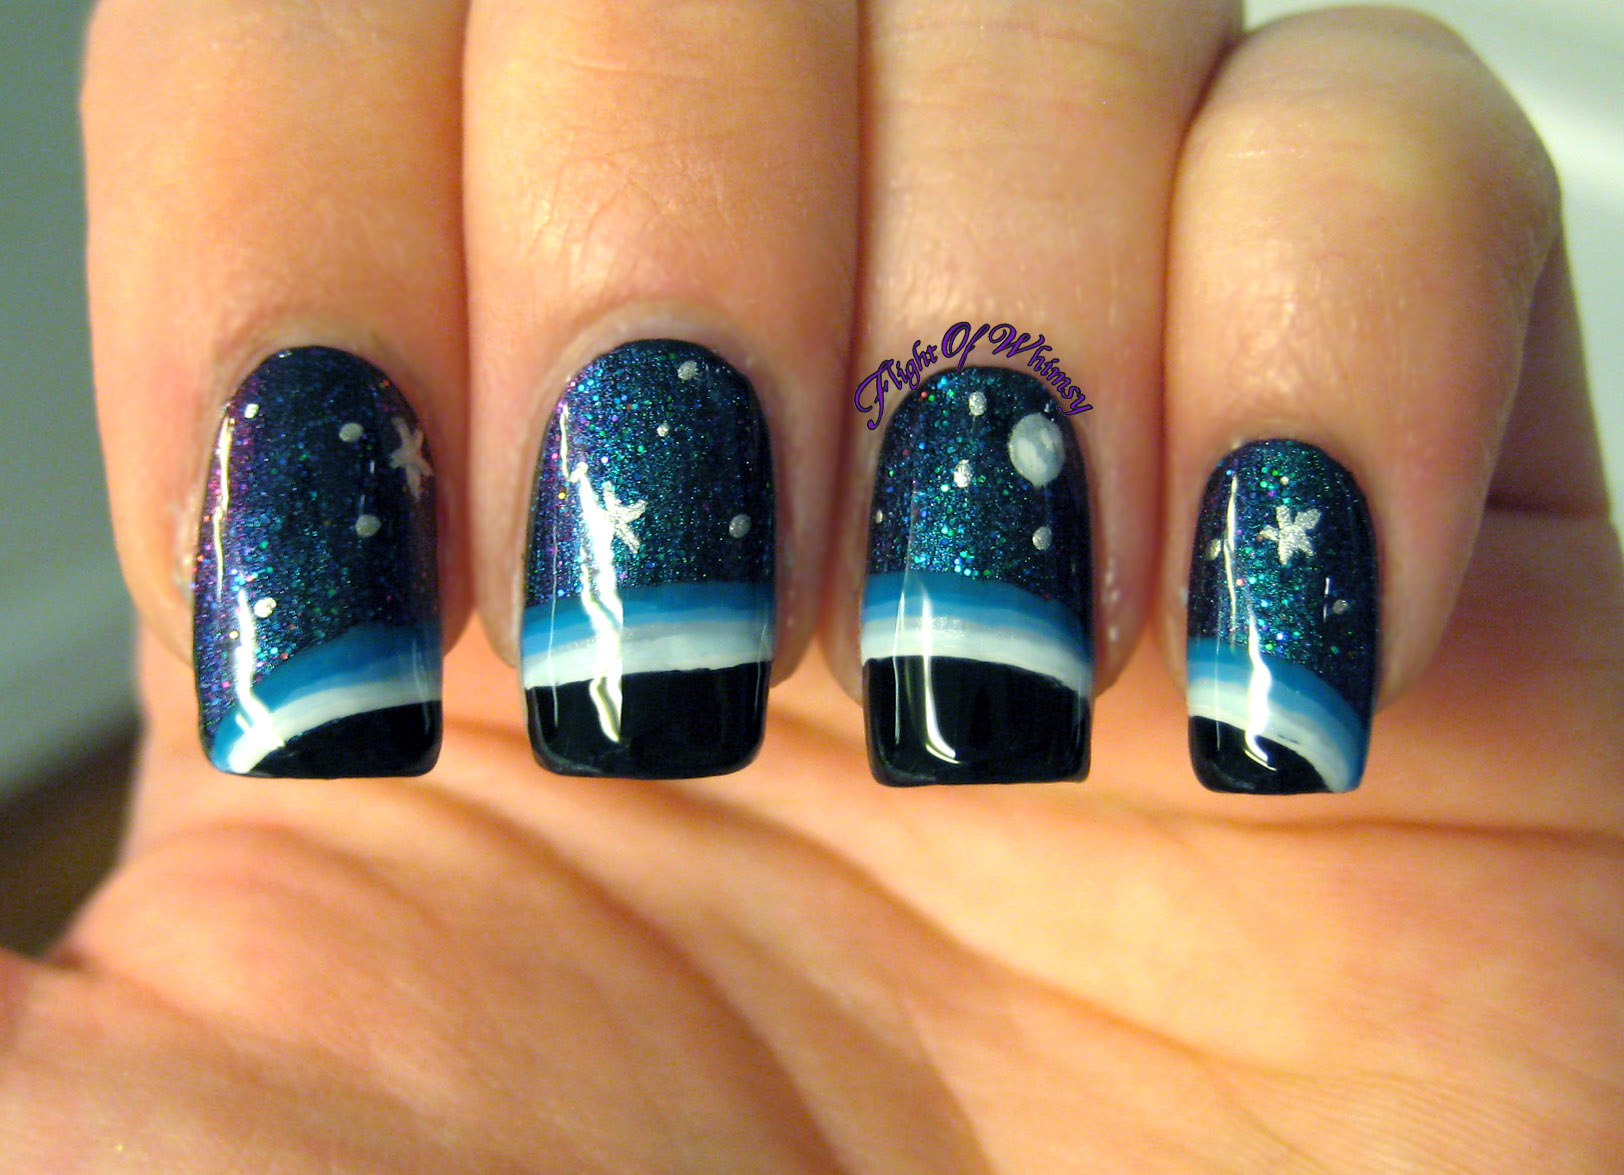 Weird science flight of whimsy according to my boyfriend this is my best nail art for a while which hurts a little since it only took about 30 minutes but hey what can you say prinsesfo Images